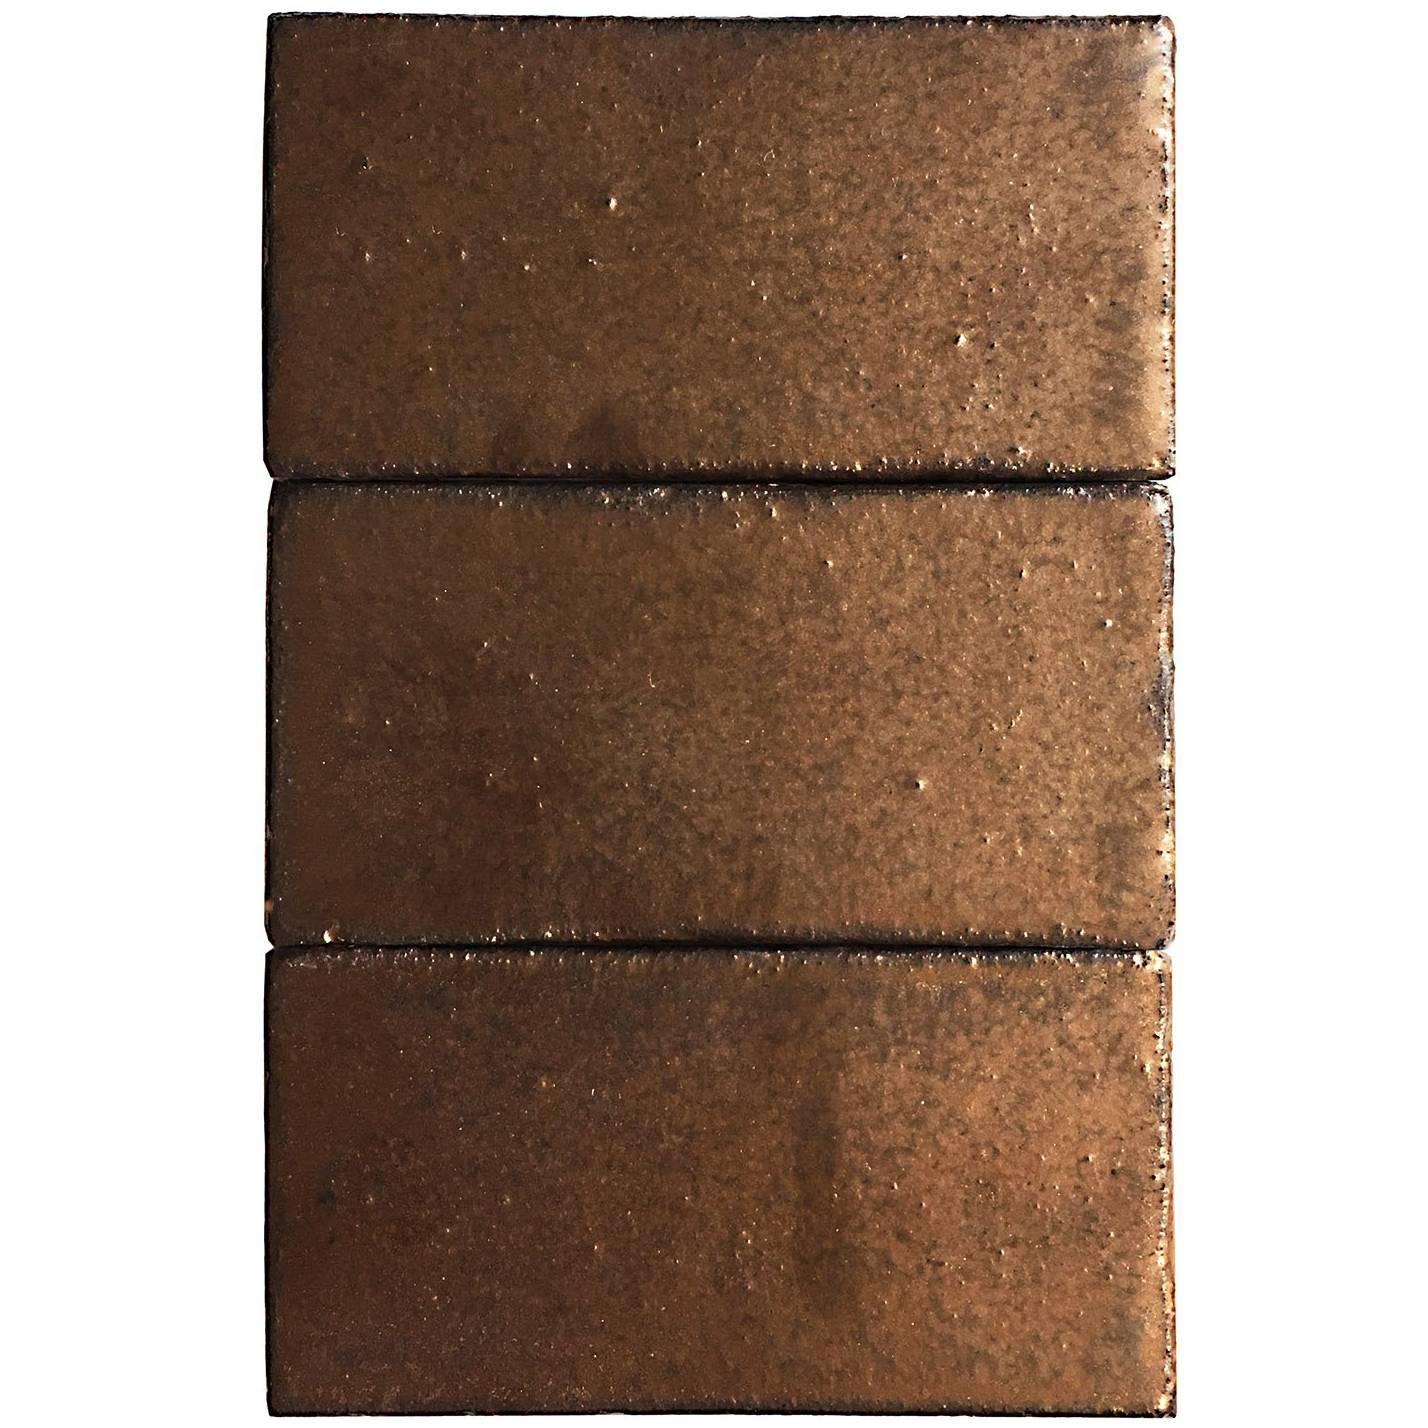 Bronze ceramic tile columbialabelsfo bronzeu0027 metallic glazed handmade ceramic tile for sale at 1stdibs dailygadgetfo Images